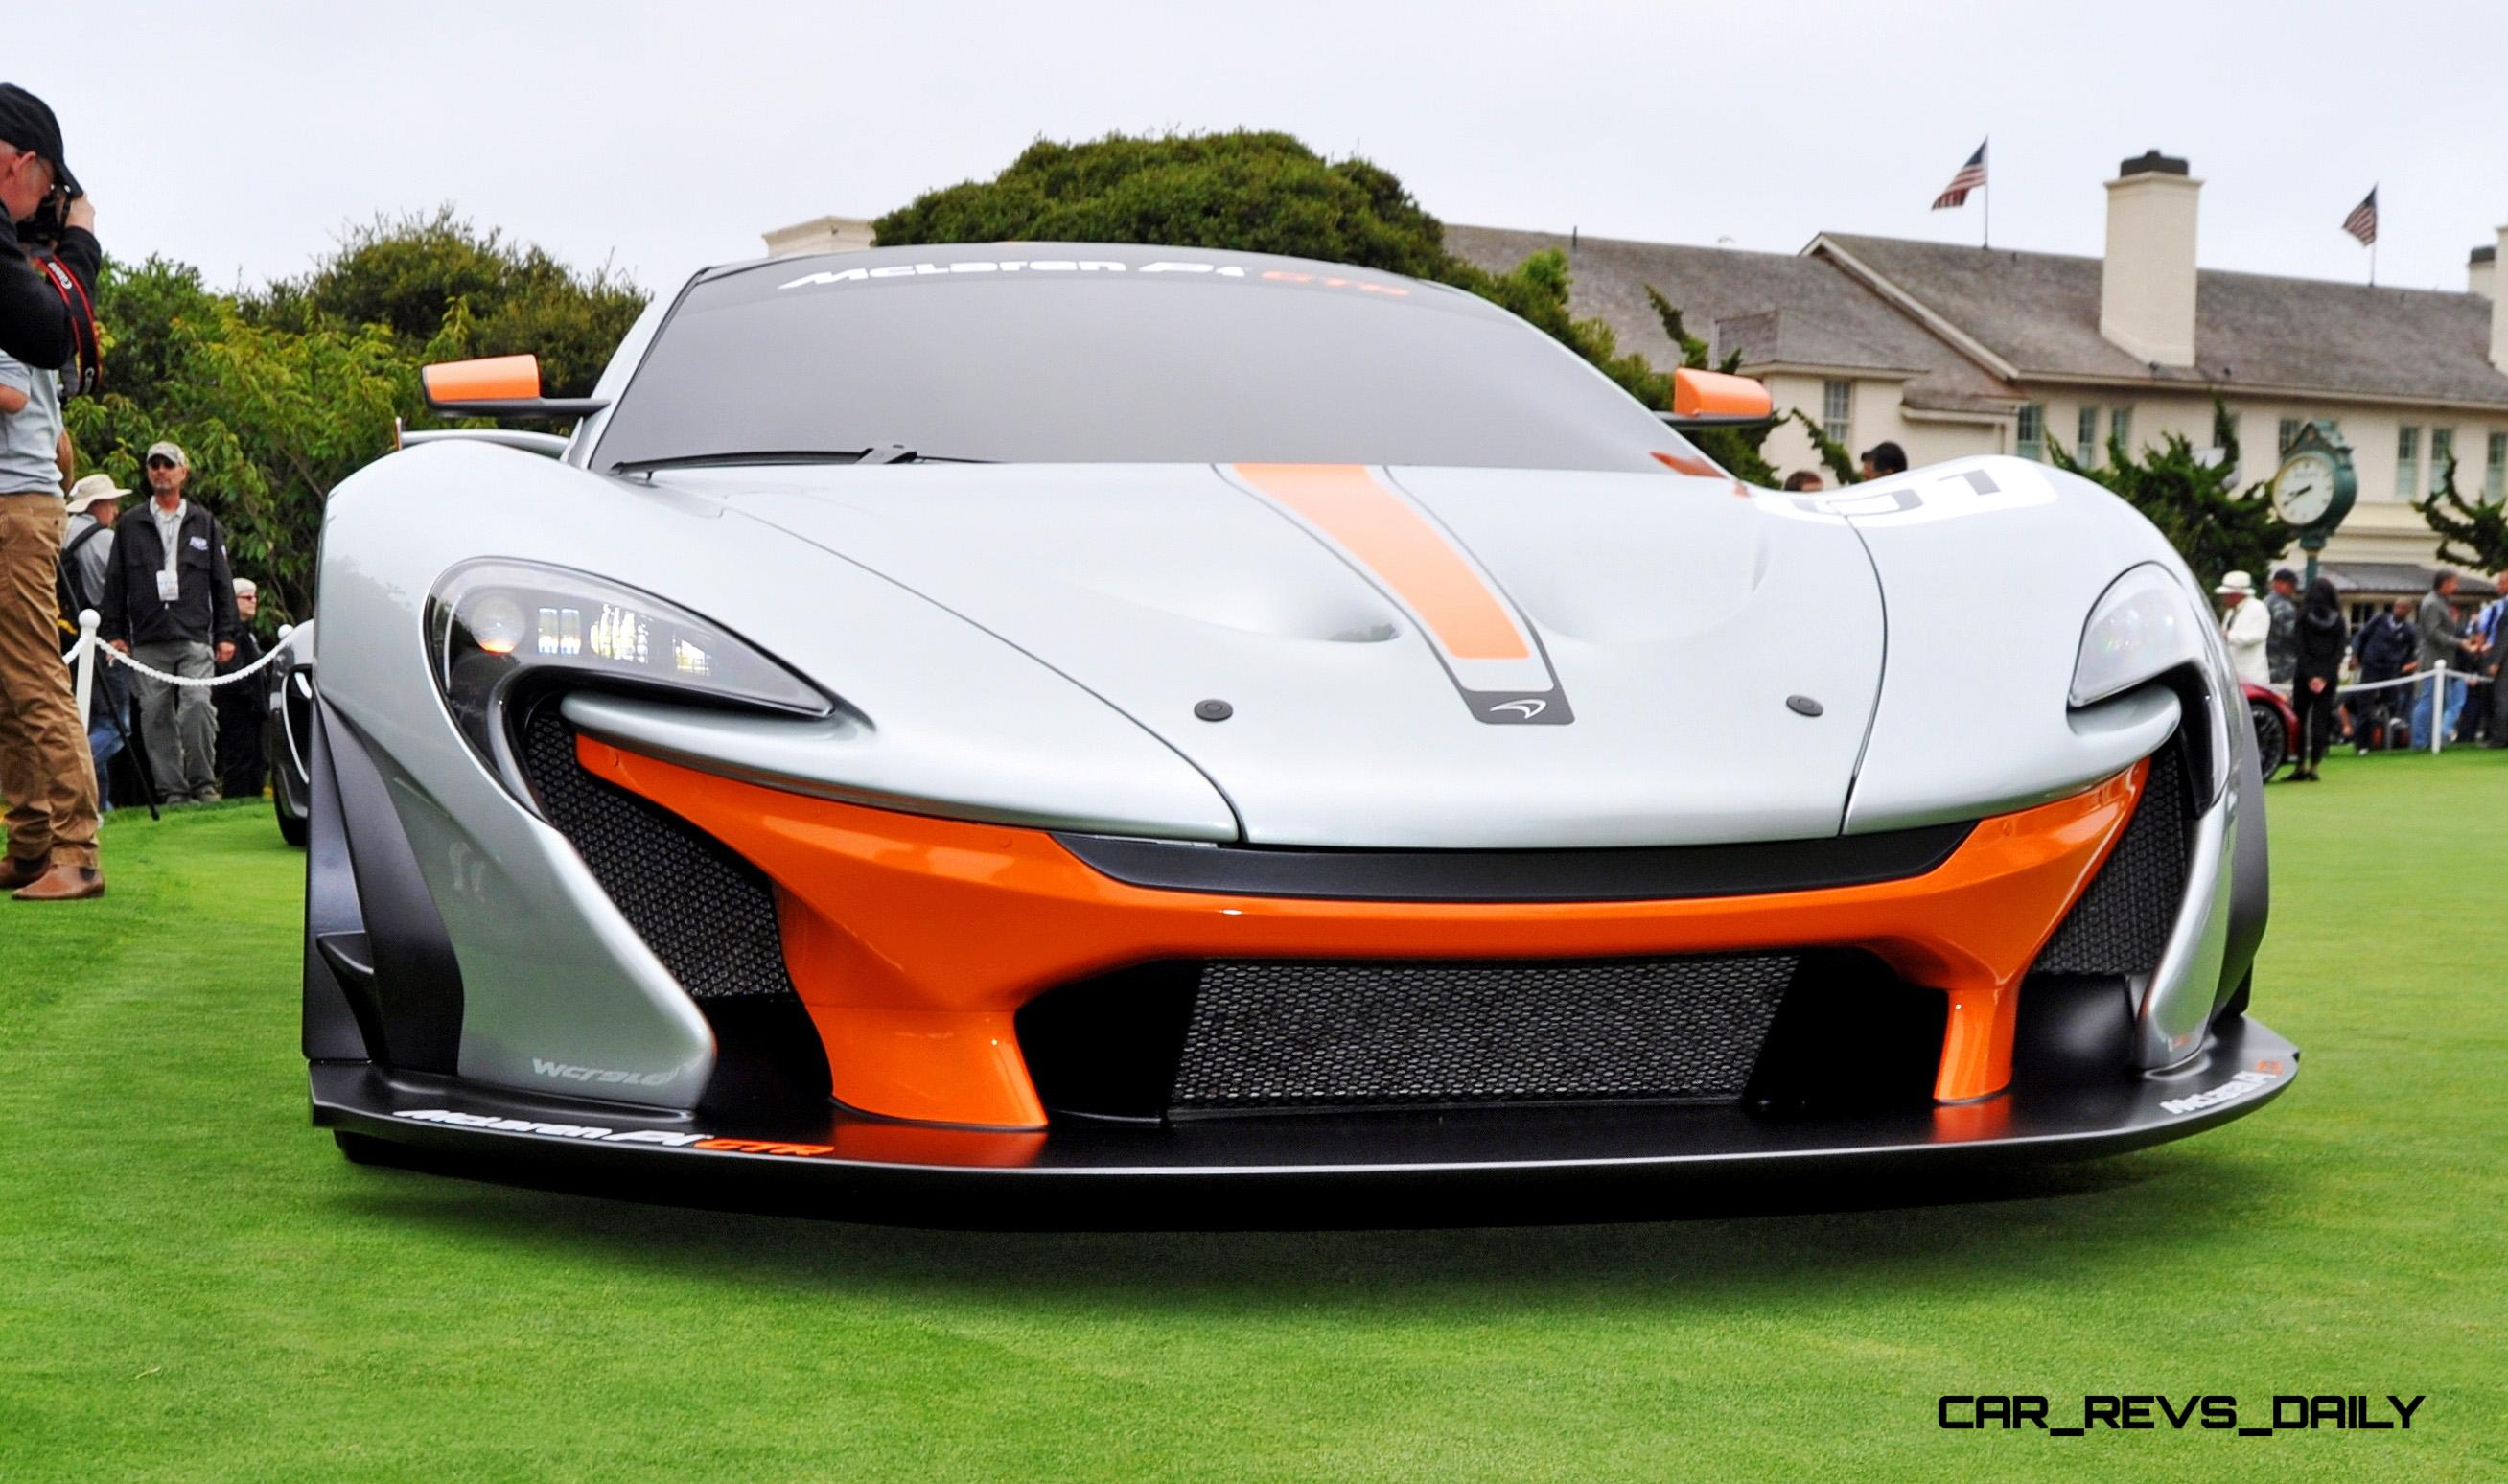 Mclaren P1 Lm >> 2016 McLaren P1 GTR - Pebble Beach World Debut in 75 High ...